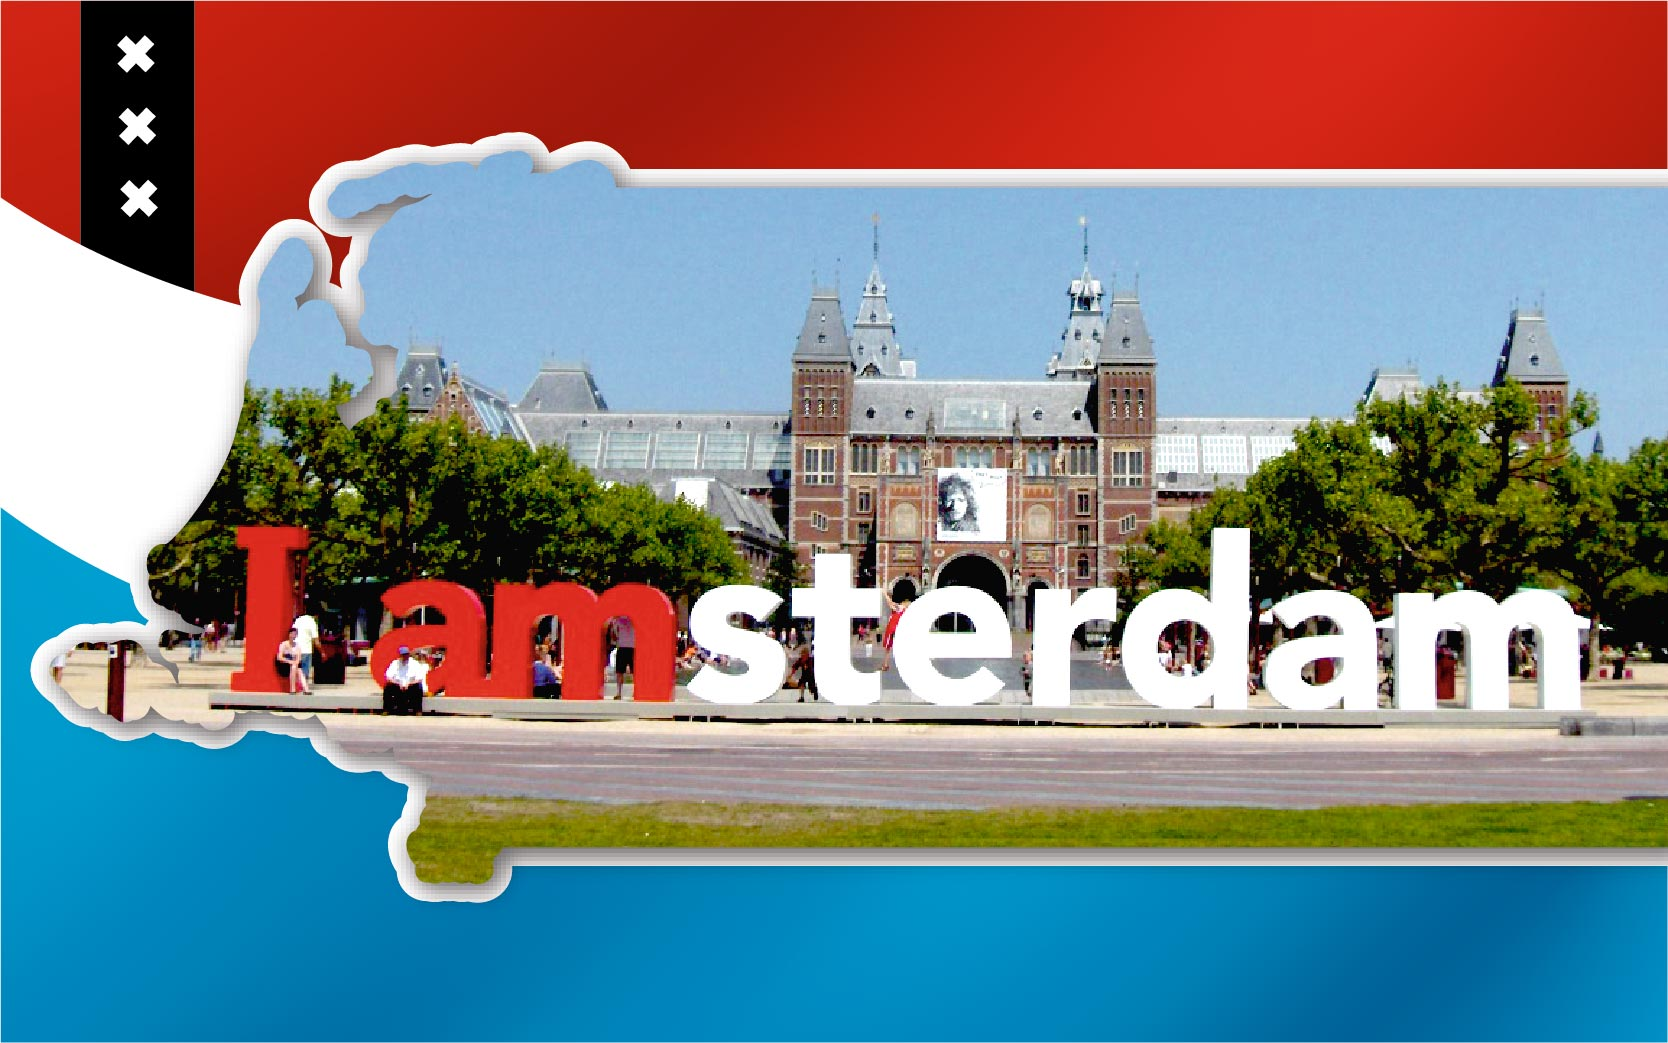 Amsterdam City Tour service